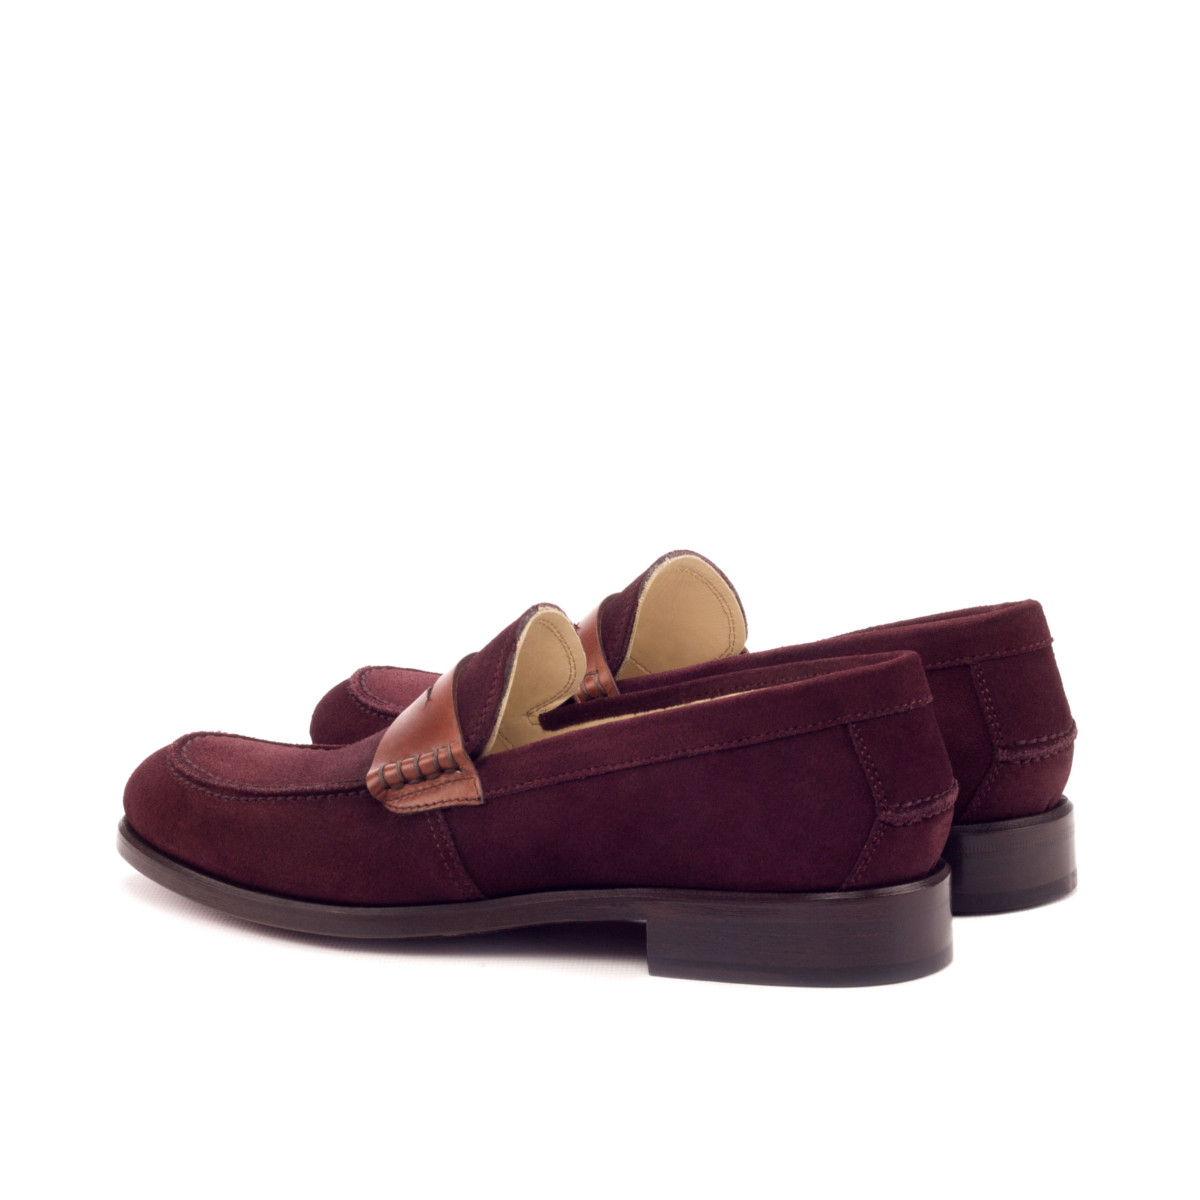 women's loafers in burgundy suede